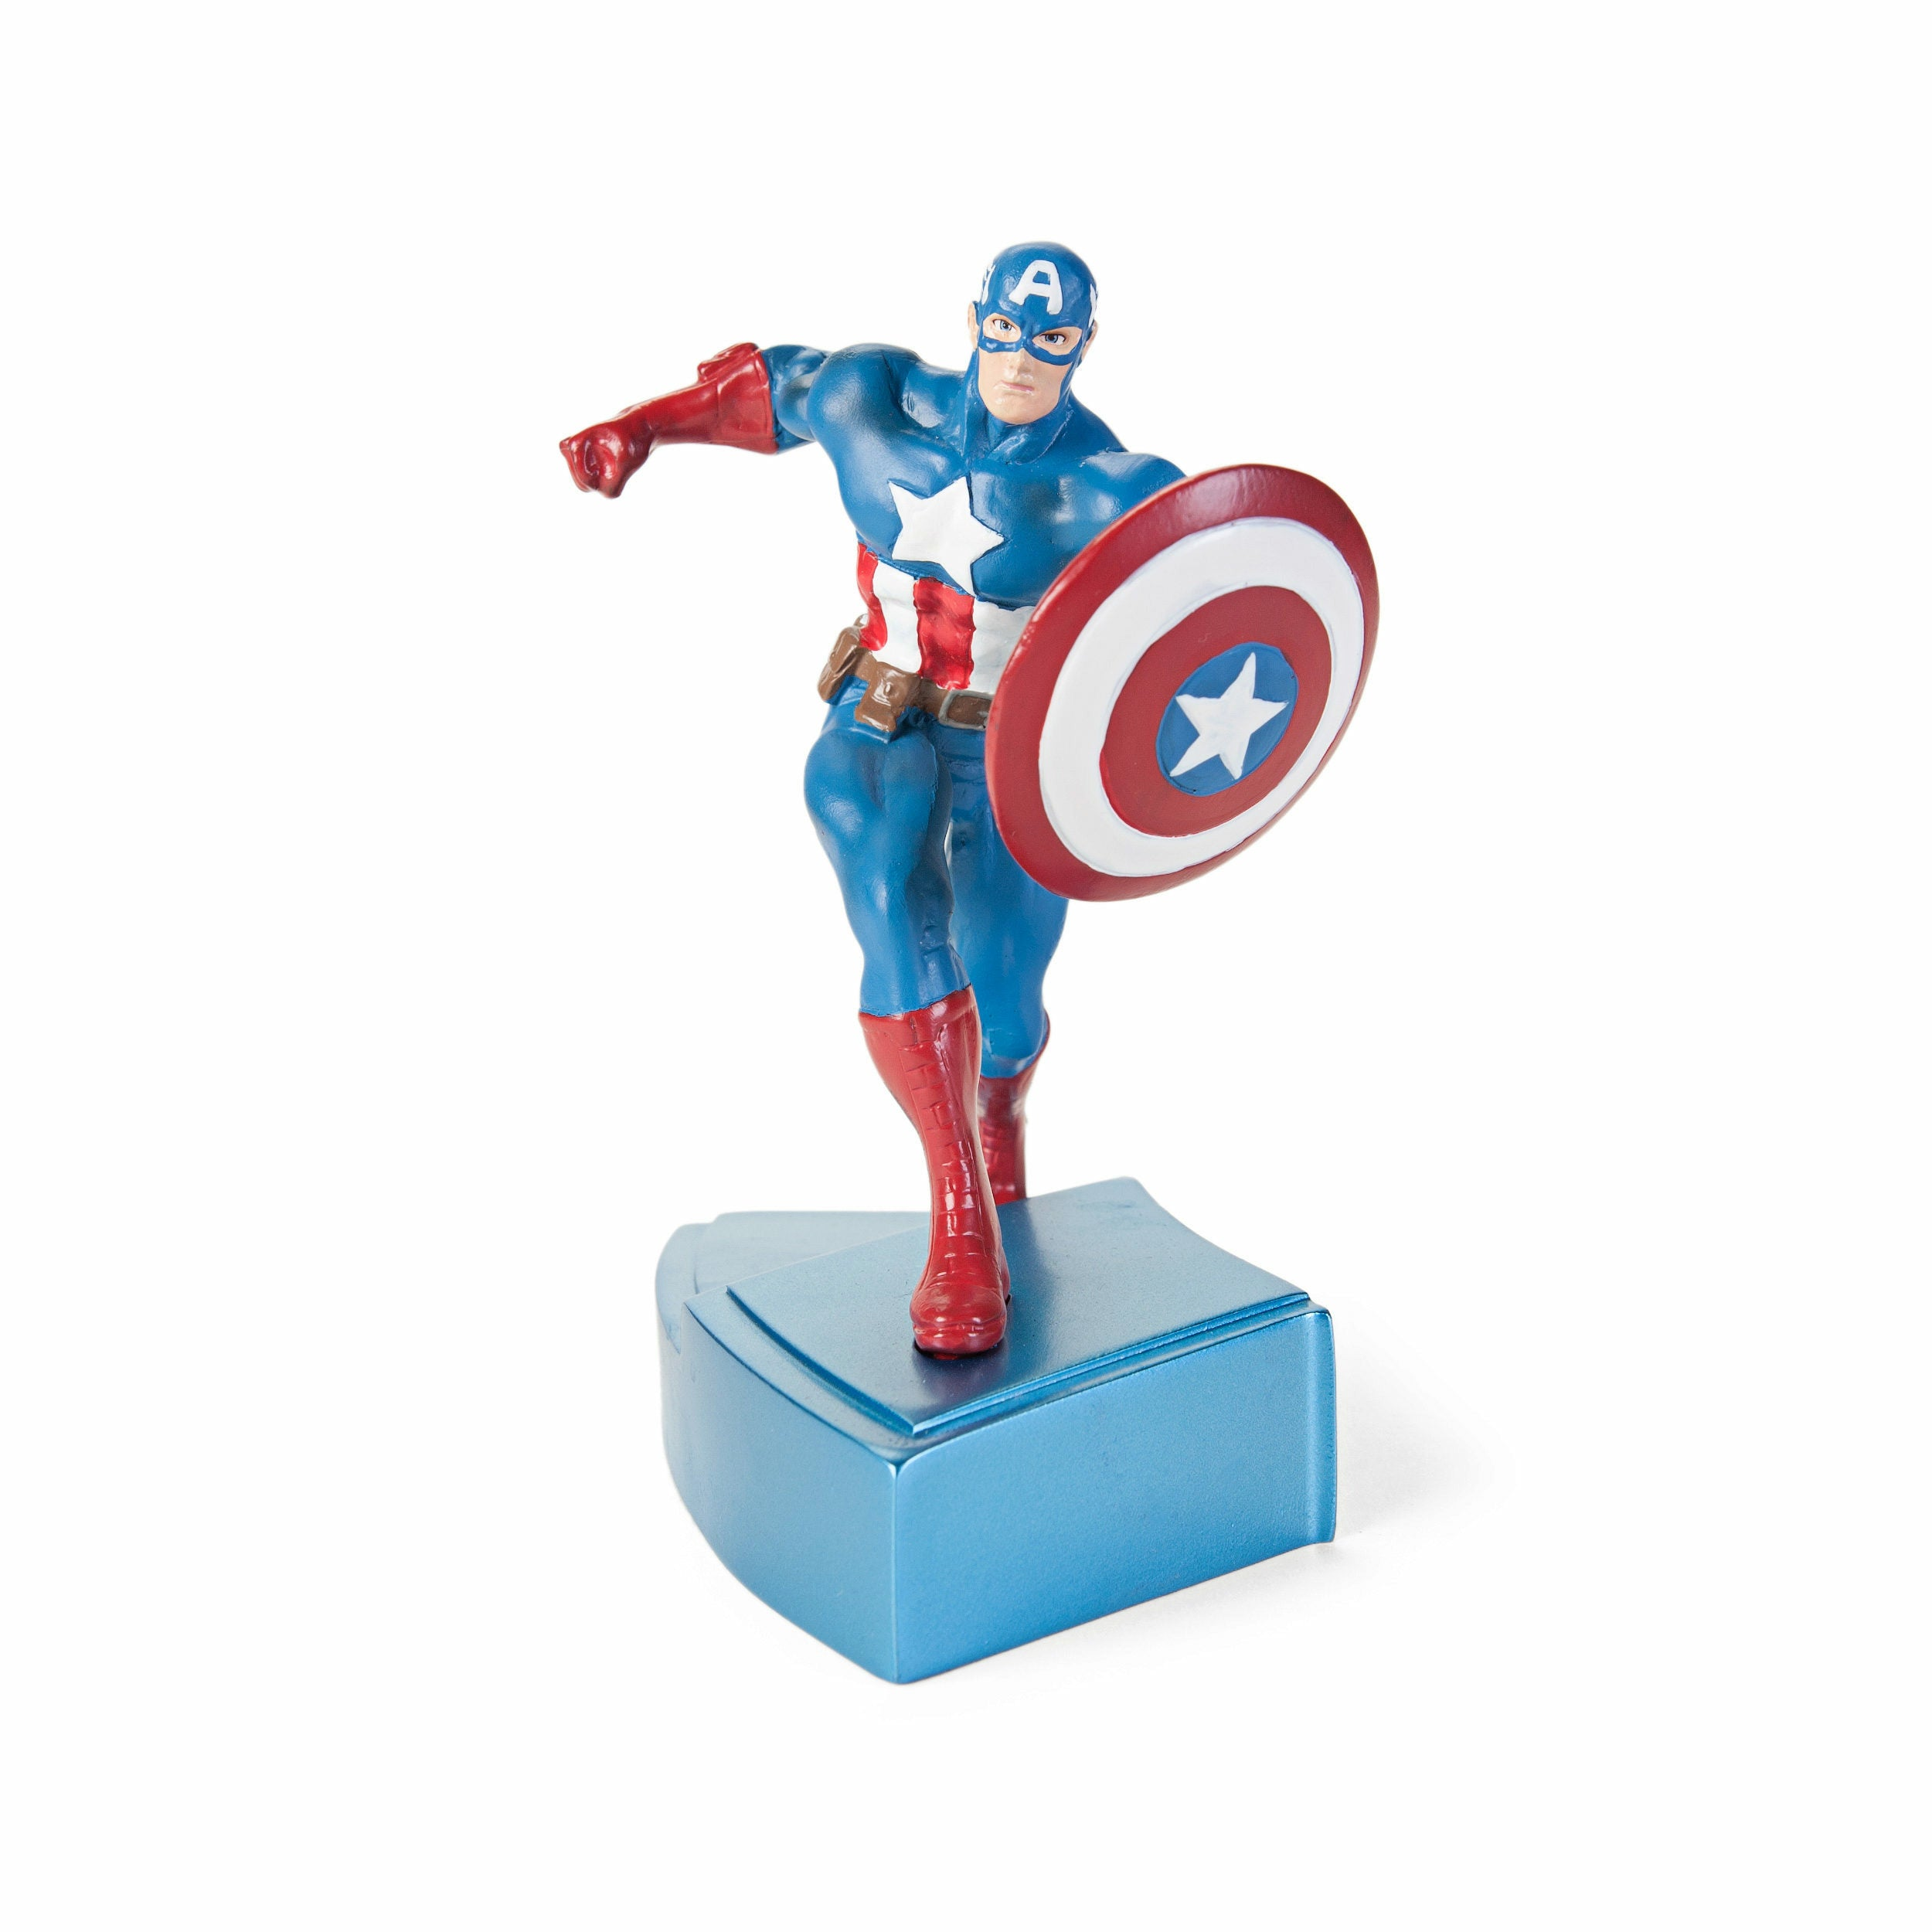 Marvel Avengers Captain America Paperweight Figure